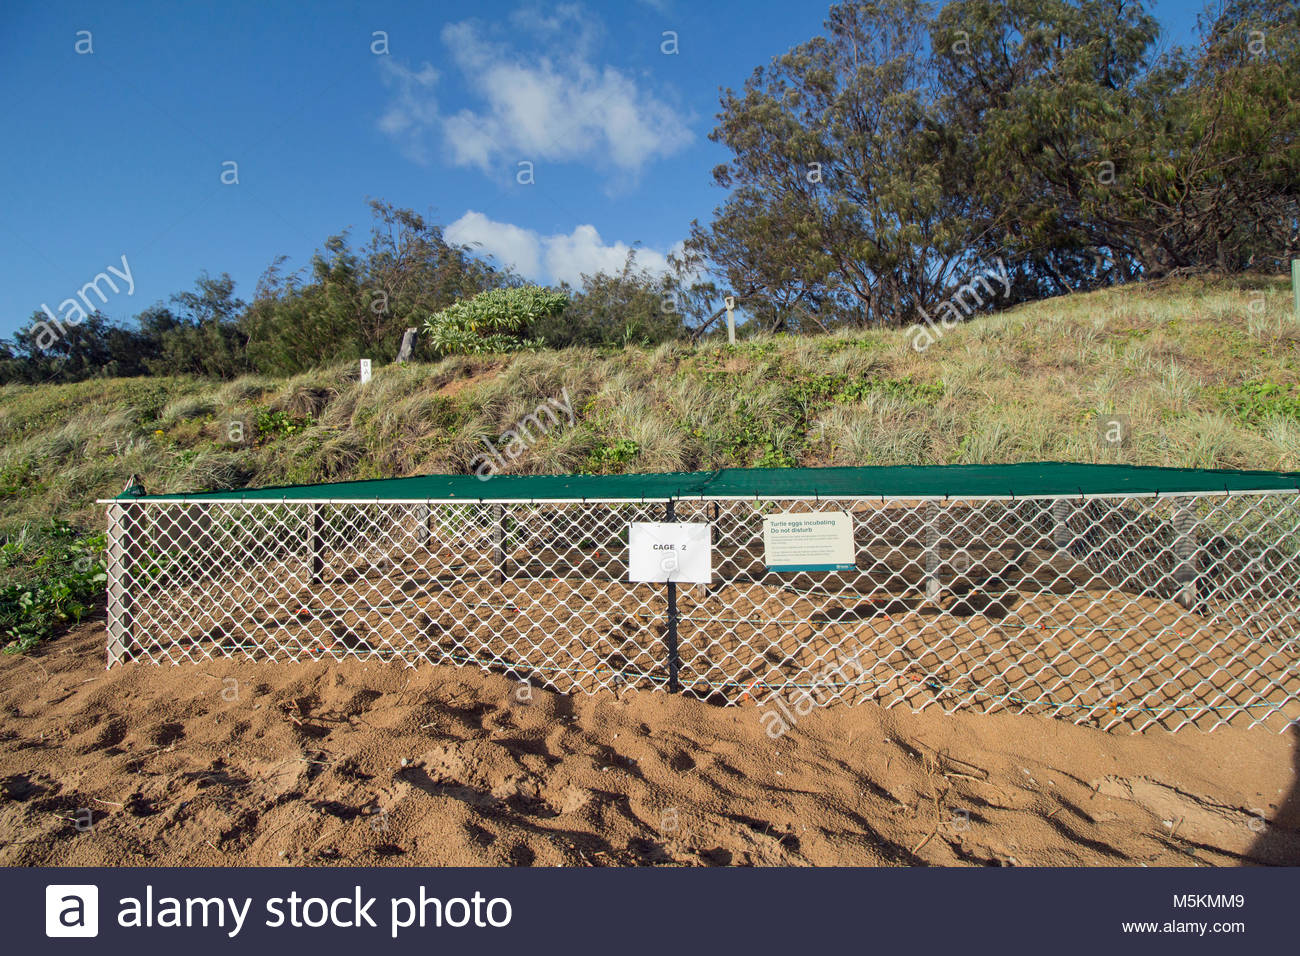 A cage built to protect relocated sea turtle nests from preditors and the heat of the sun. Mon Repos Beach in Australia. - Stock Image